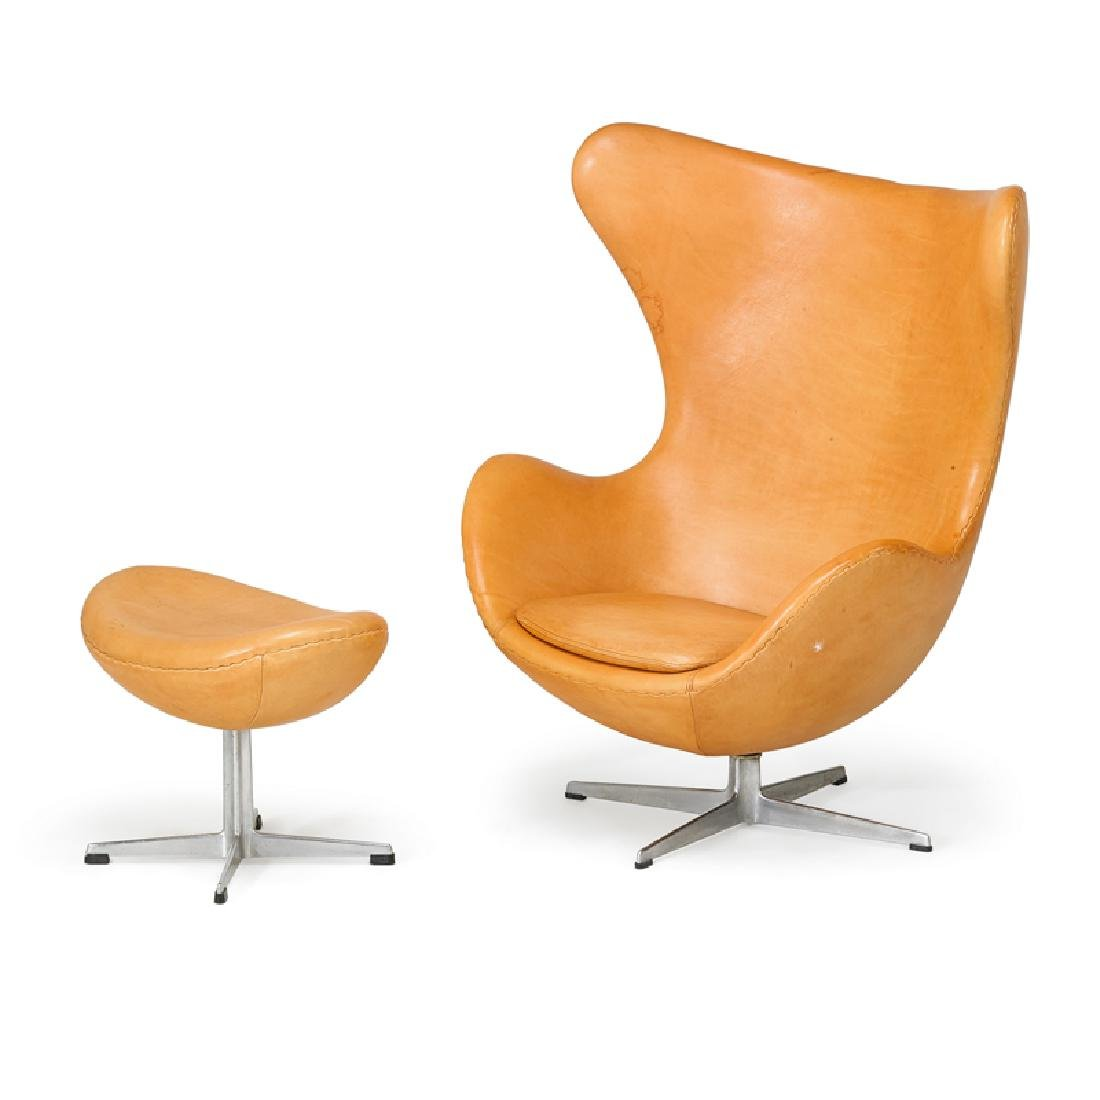 ARNE JACOBSEN  FRITZ HANSEN Egg chair and ottoman